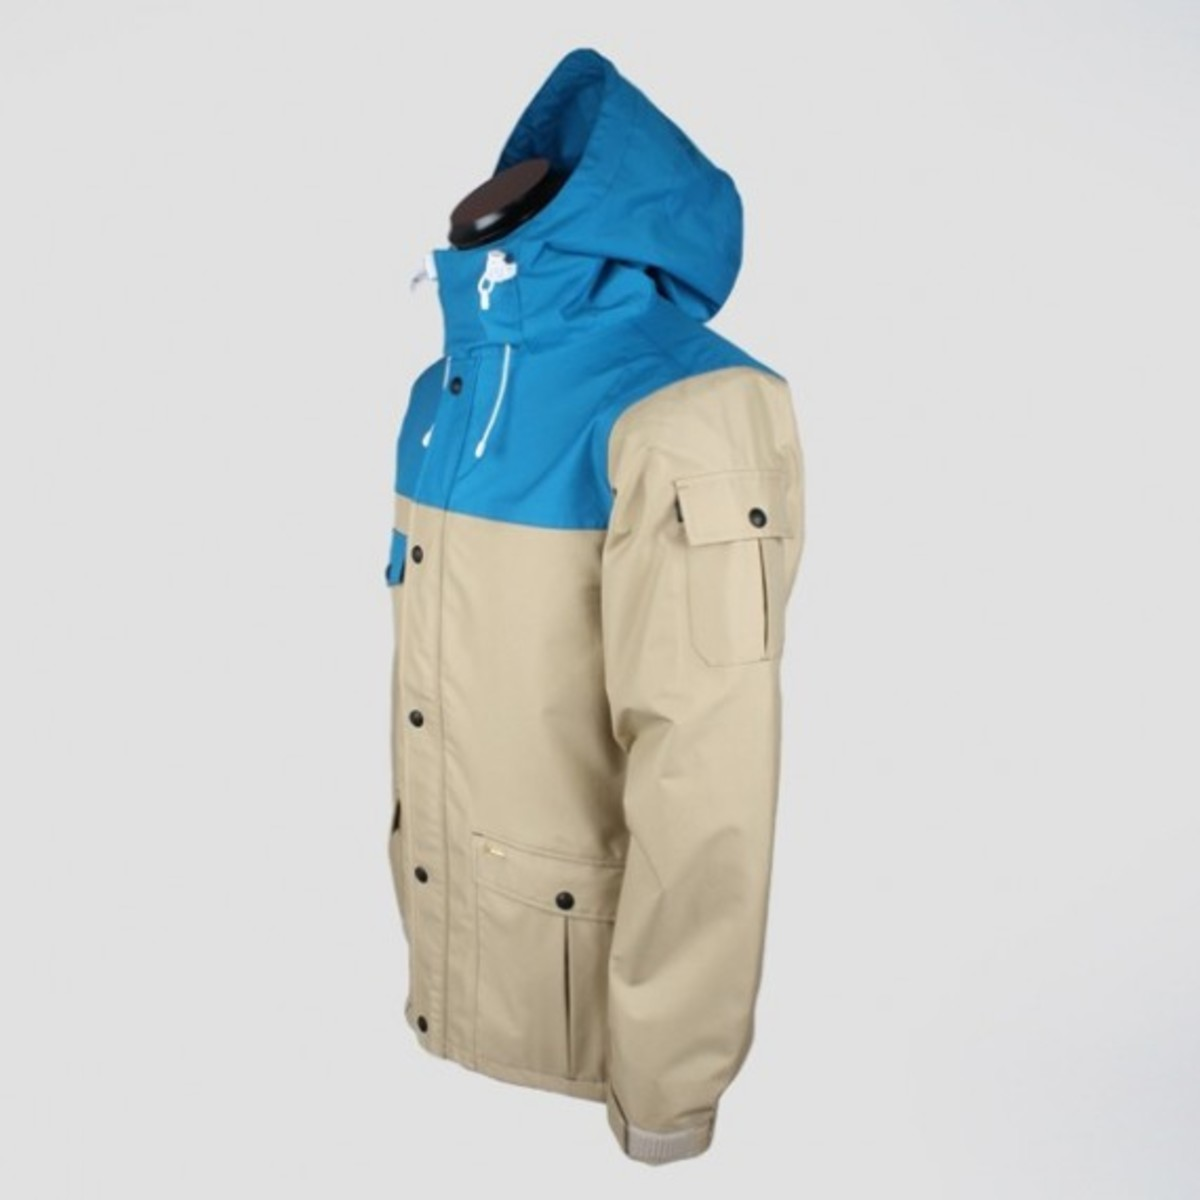 STPL-Gondry-Tech-Jacket-SP11_2